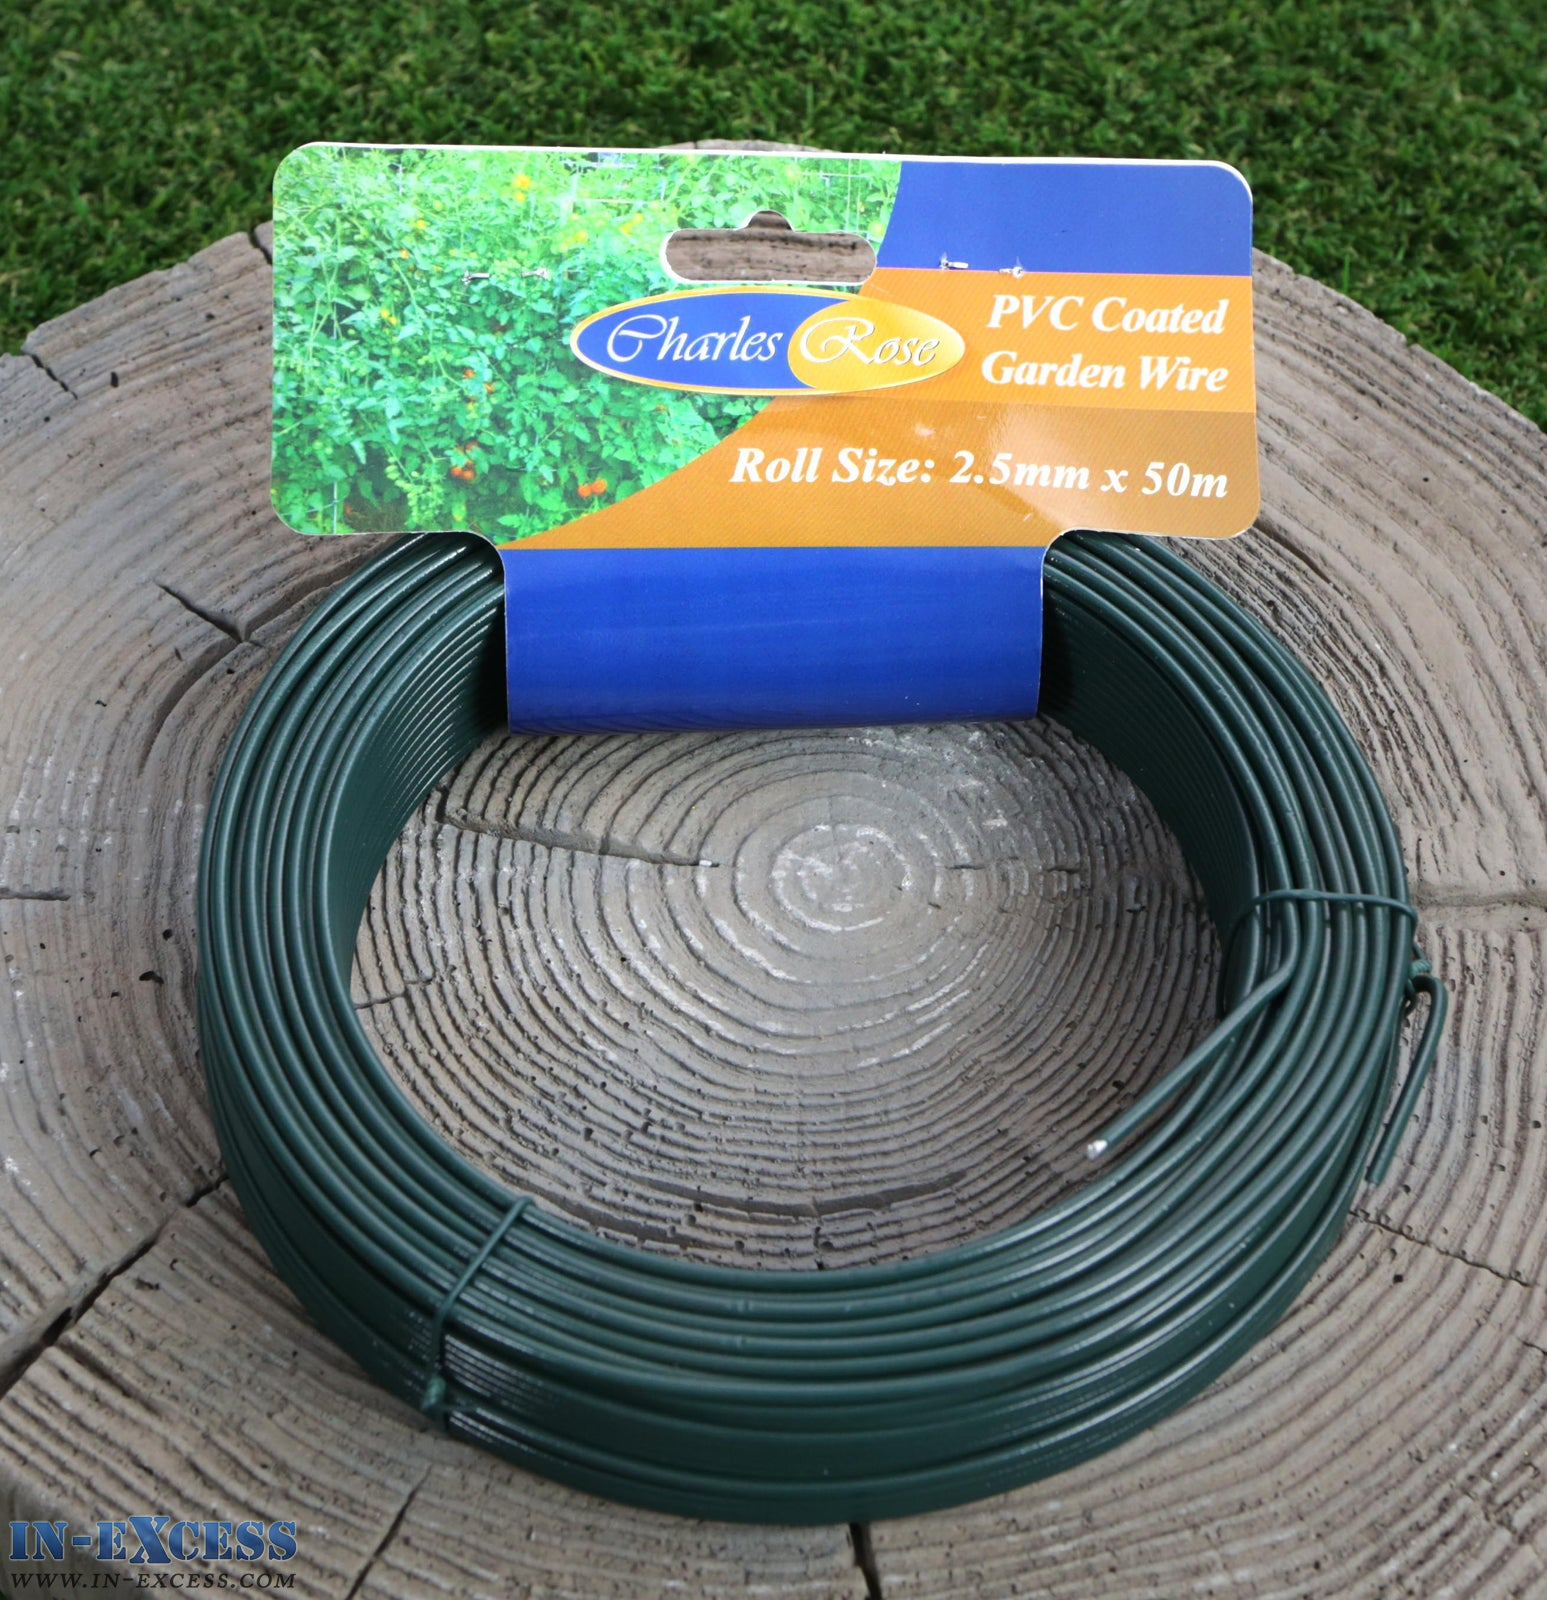 Charles Rose PVC Coated Garden Wire 2.5mm x 50 Metres - In-Excess Direct